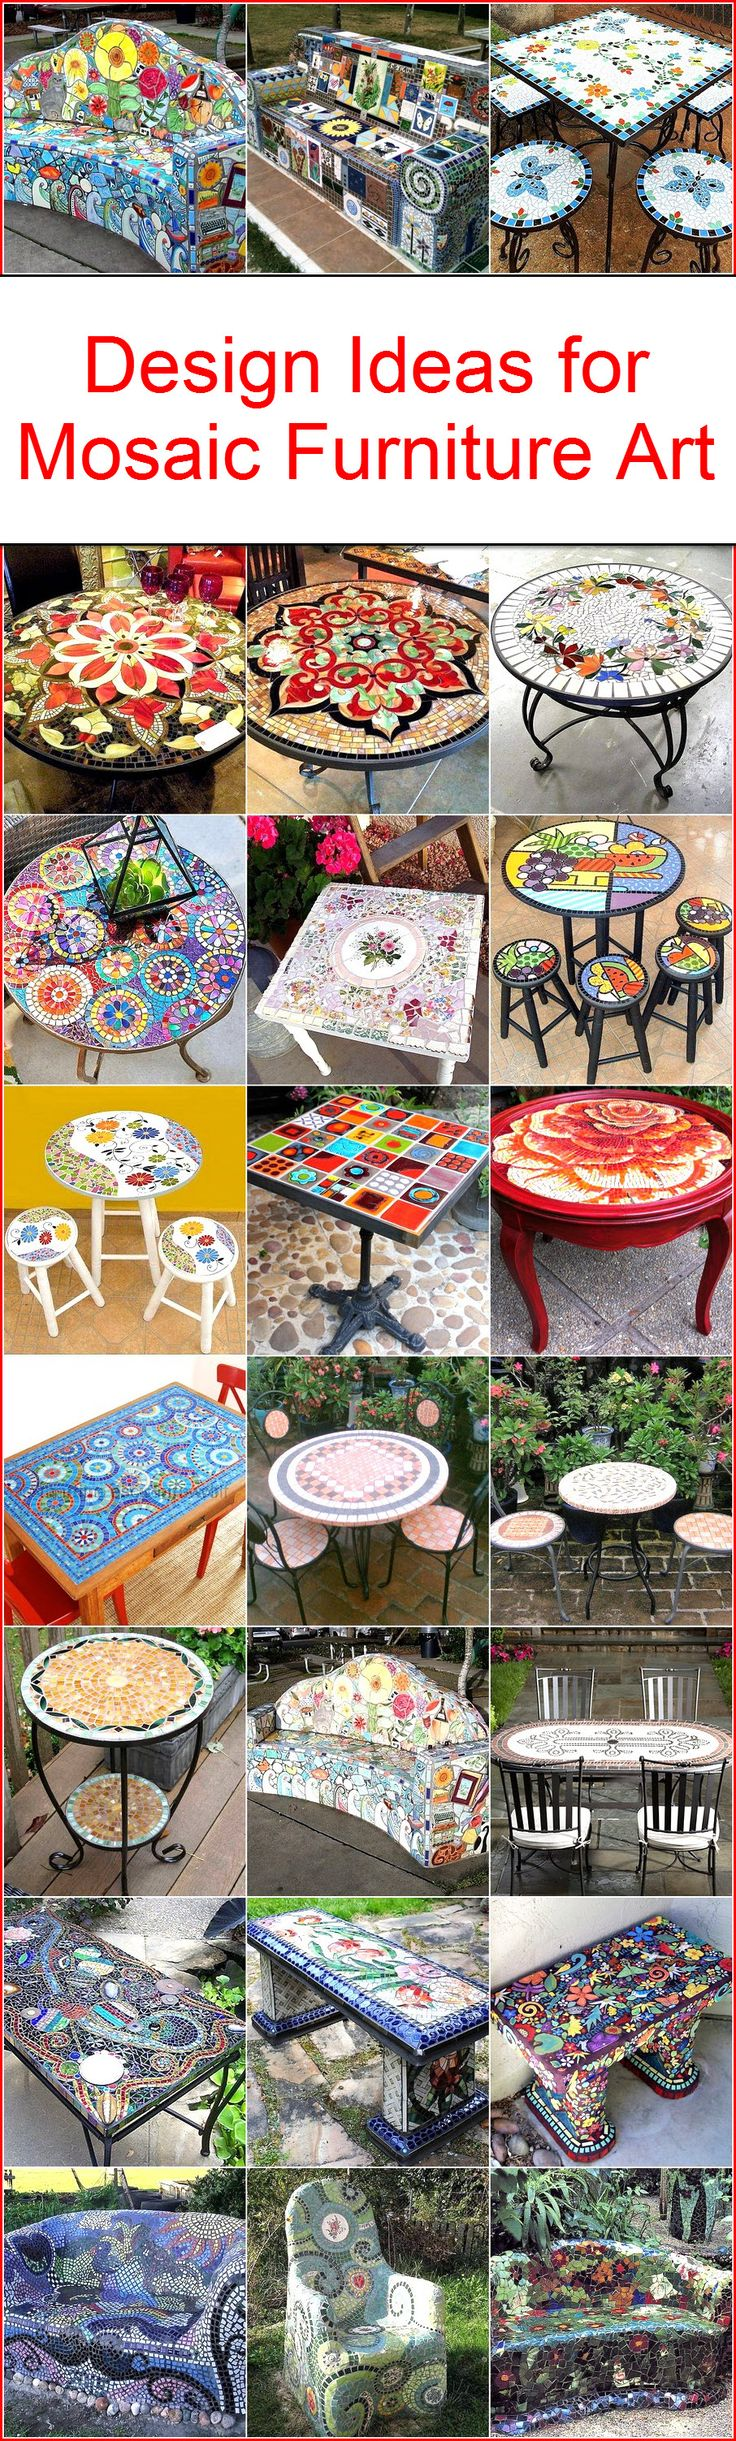 Mosaic Art is equally popular in the present time among the art lovers. Mosaic art is nowadays fused in the furniture designs and interior of homes. However, its quite expensive to buy that from market. You will be amazed that mosaic furniture can be made on your own and this post aims to give you awesome Design ideas for Mosaic furniture Art.